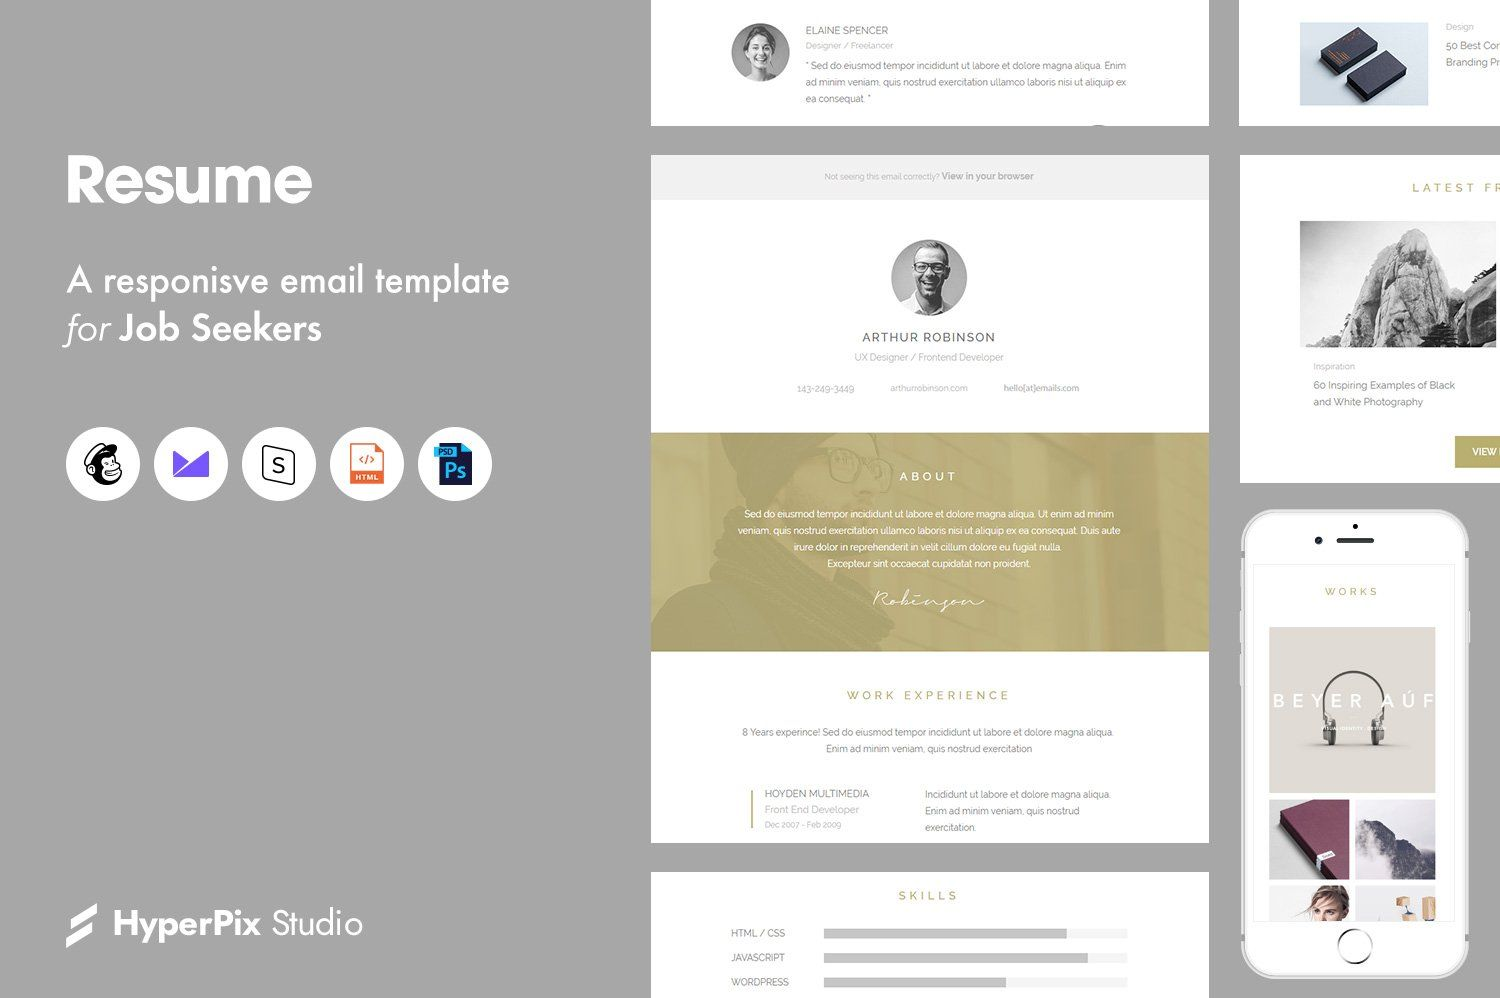 Resume Email Template Ad , Sponsored, ReplaceUnlimited